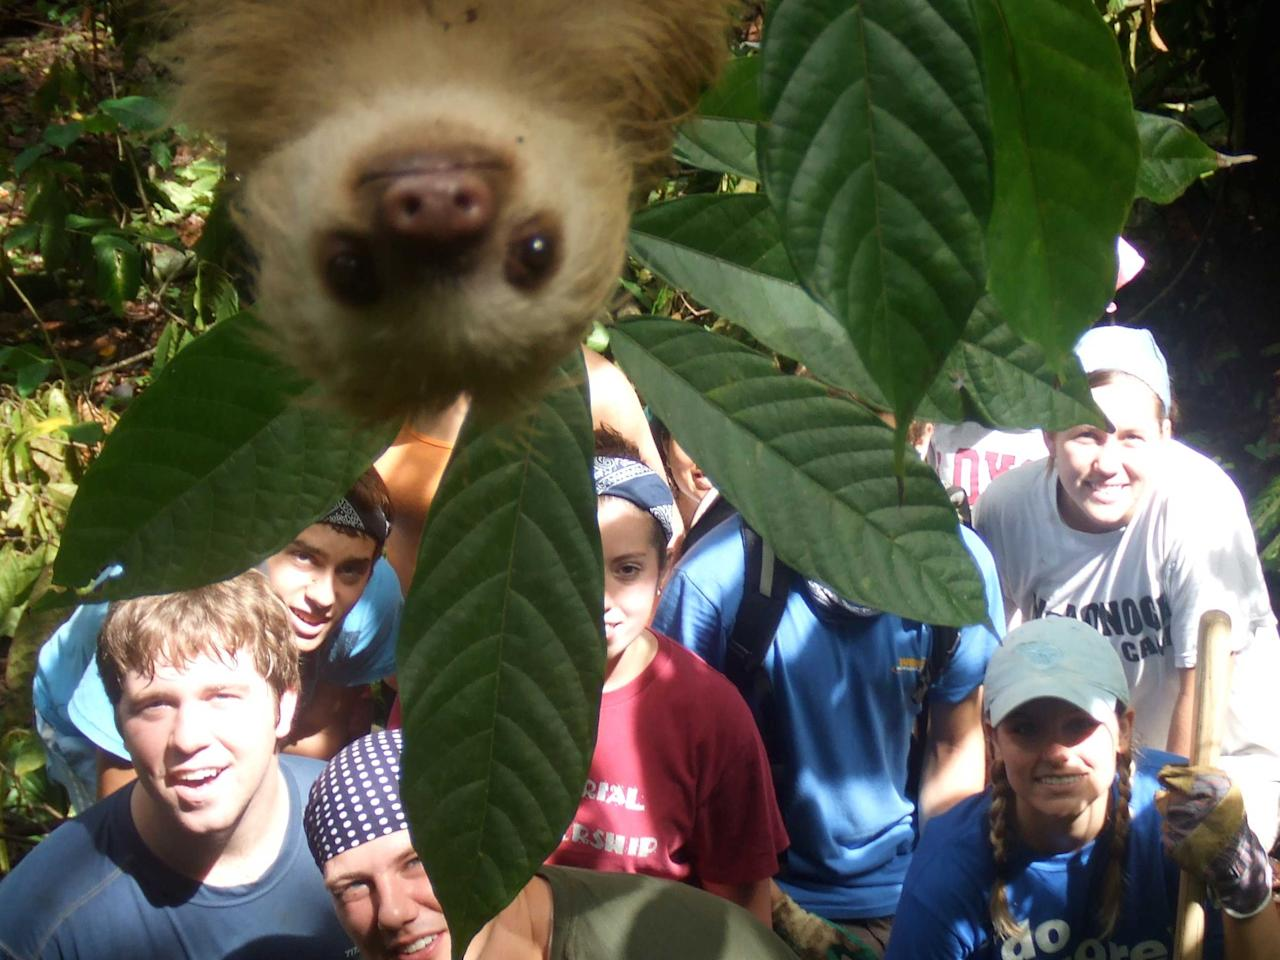 moment a sloth gatecrashed a groups holiday snap in the jungle. The group of youngsters on an International Student Volunteers expedition from all over the world had been helping cut paths in the dense woodland on Costa Rica to allow researchers to get around. And after completing their back-breaking charity work, they decided to have a group picture taken as a keep sake. But what they didn't expect was this inquisitive sloth slowly lowering himself down into the frame as the group smiled for the camera. Manuel Ramirez, who is an anthropologist and tour guide for International student volunteers , had decided to take the snap, but he was not aware that a fame hungry sloth was waiting above (Caters)